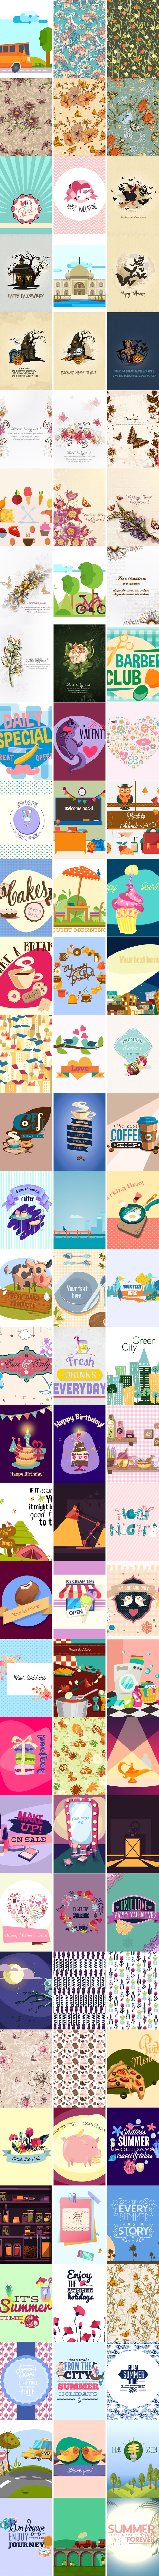 Get 500 Top-Quality Illustrations to step up your game – Only $29